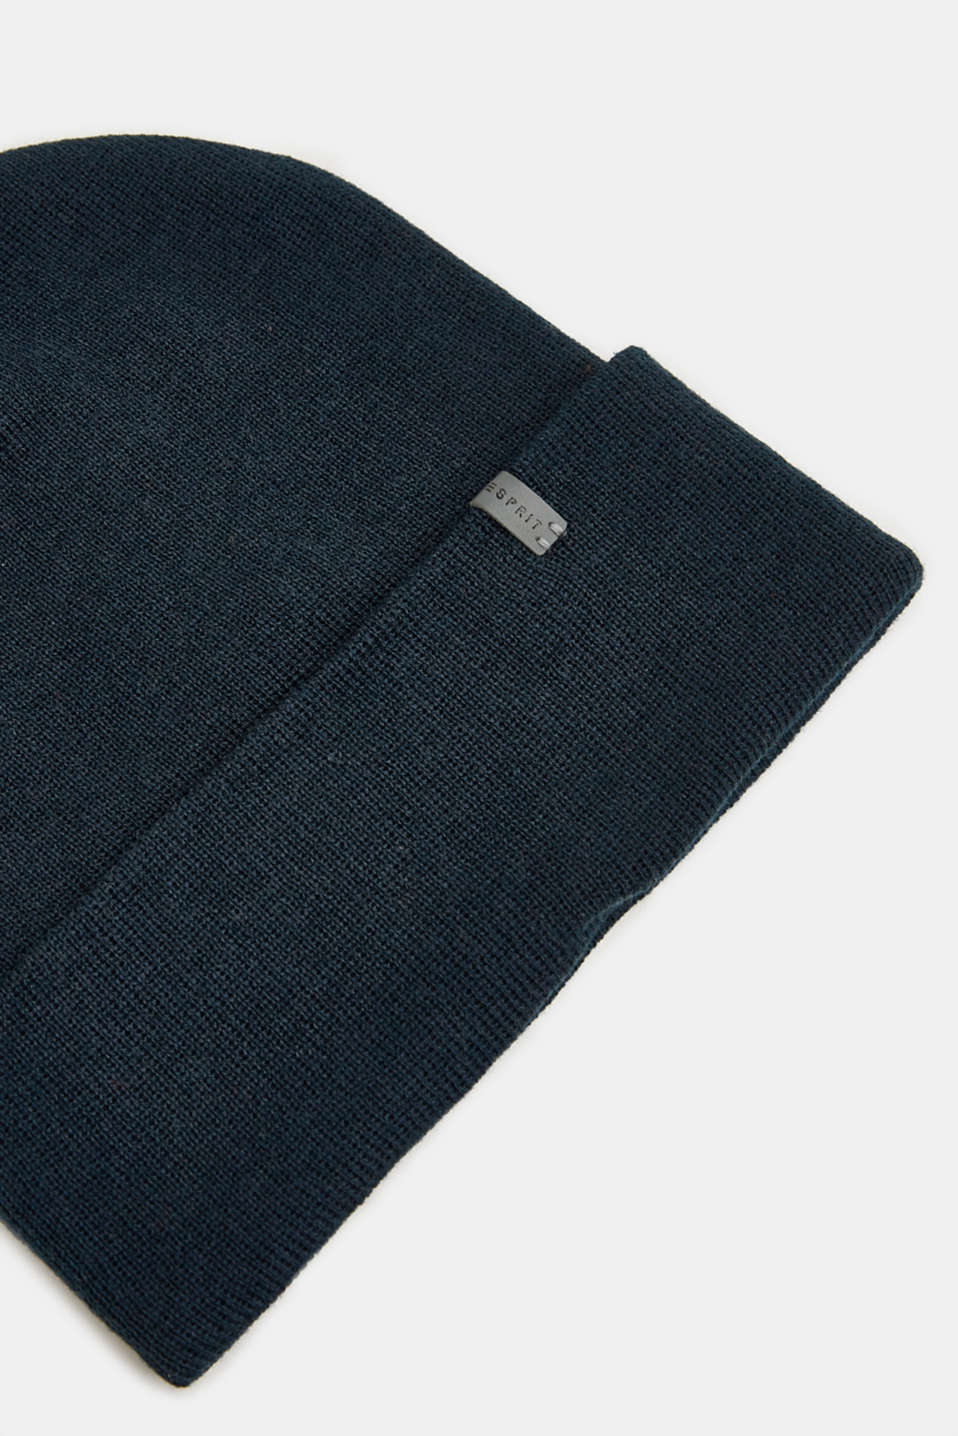 With wool: Beanie with a turn-up cuff, NAVY, detail image number 1